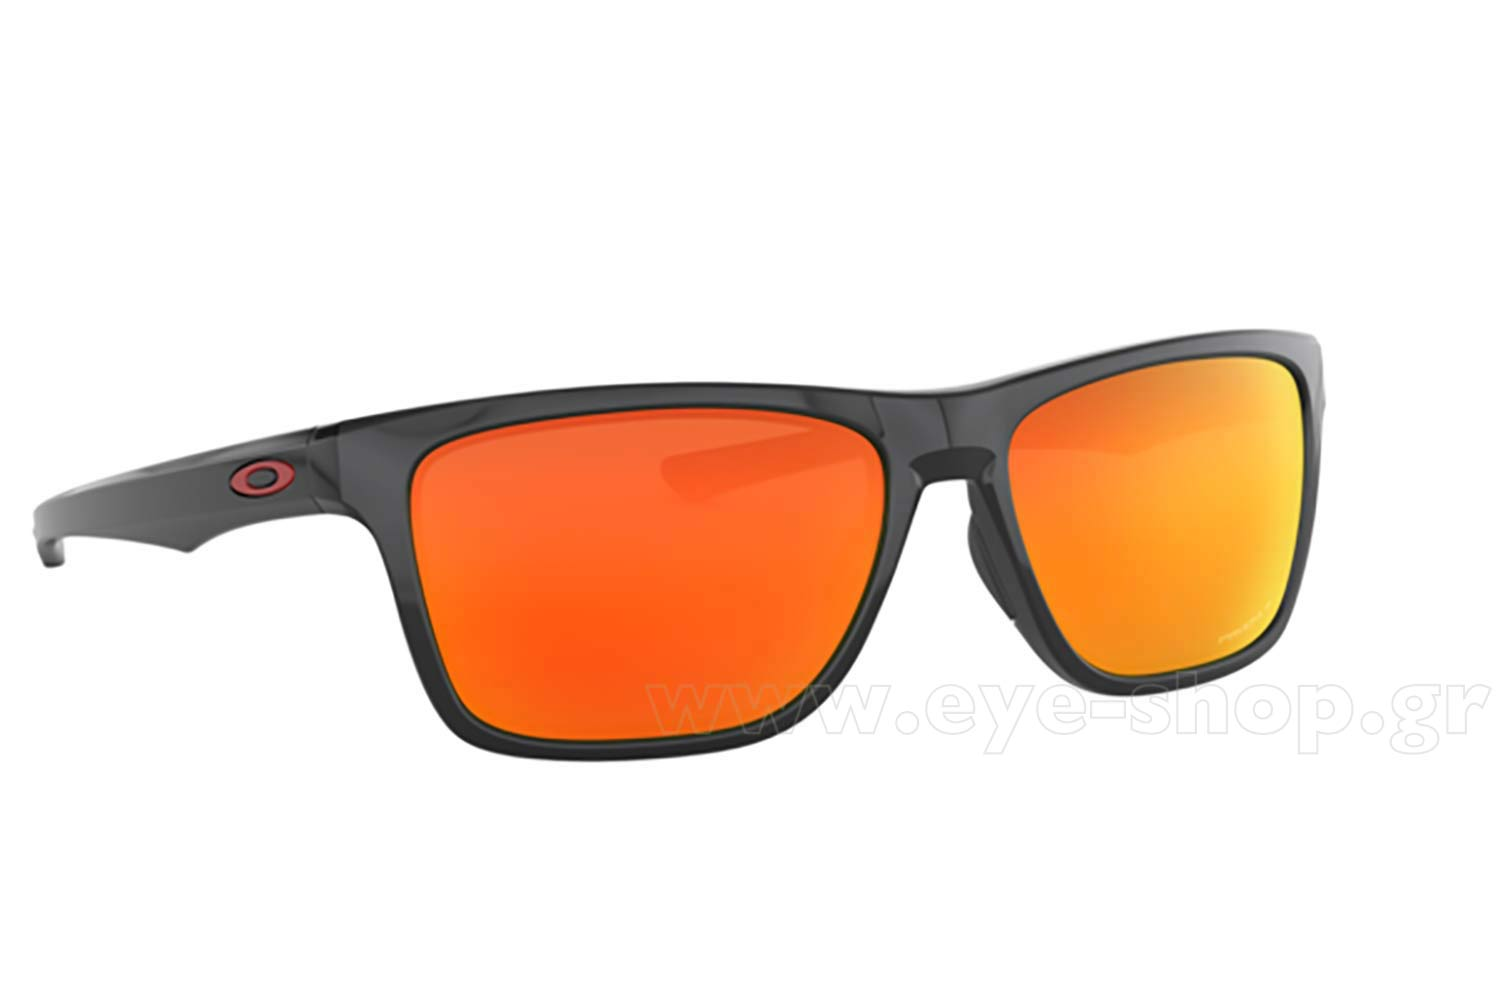 48587d93f4f SUNGLASSES Oakley HOLSTON 9334 12